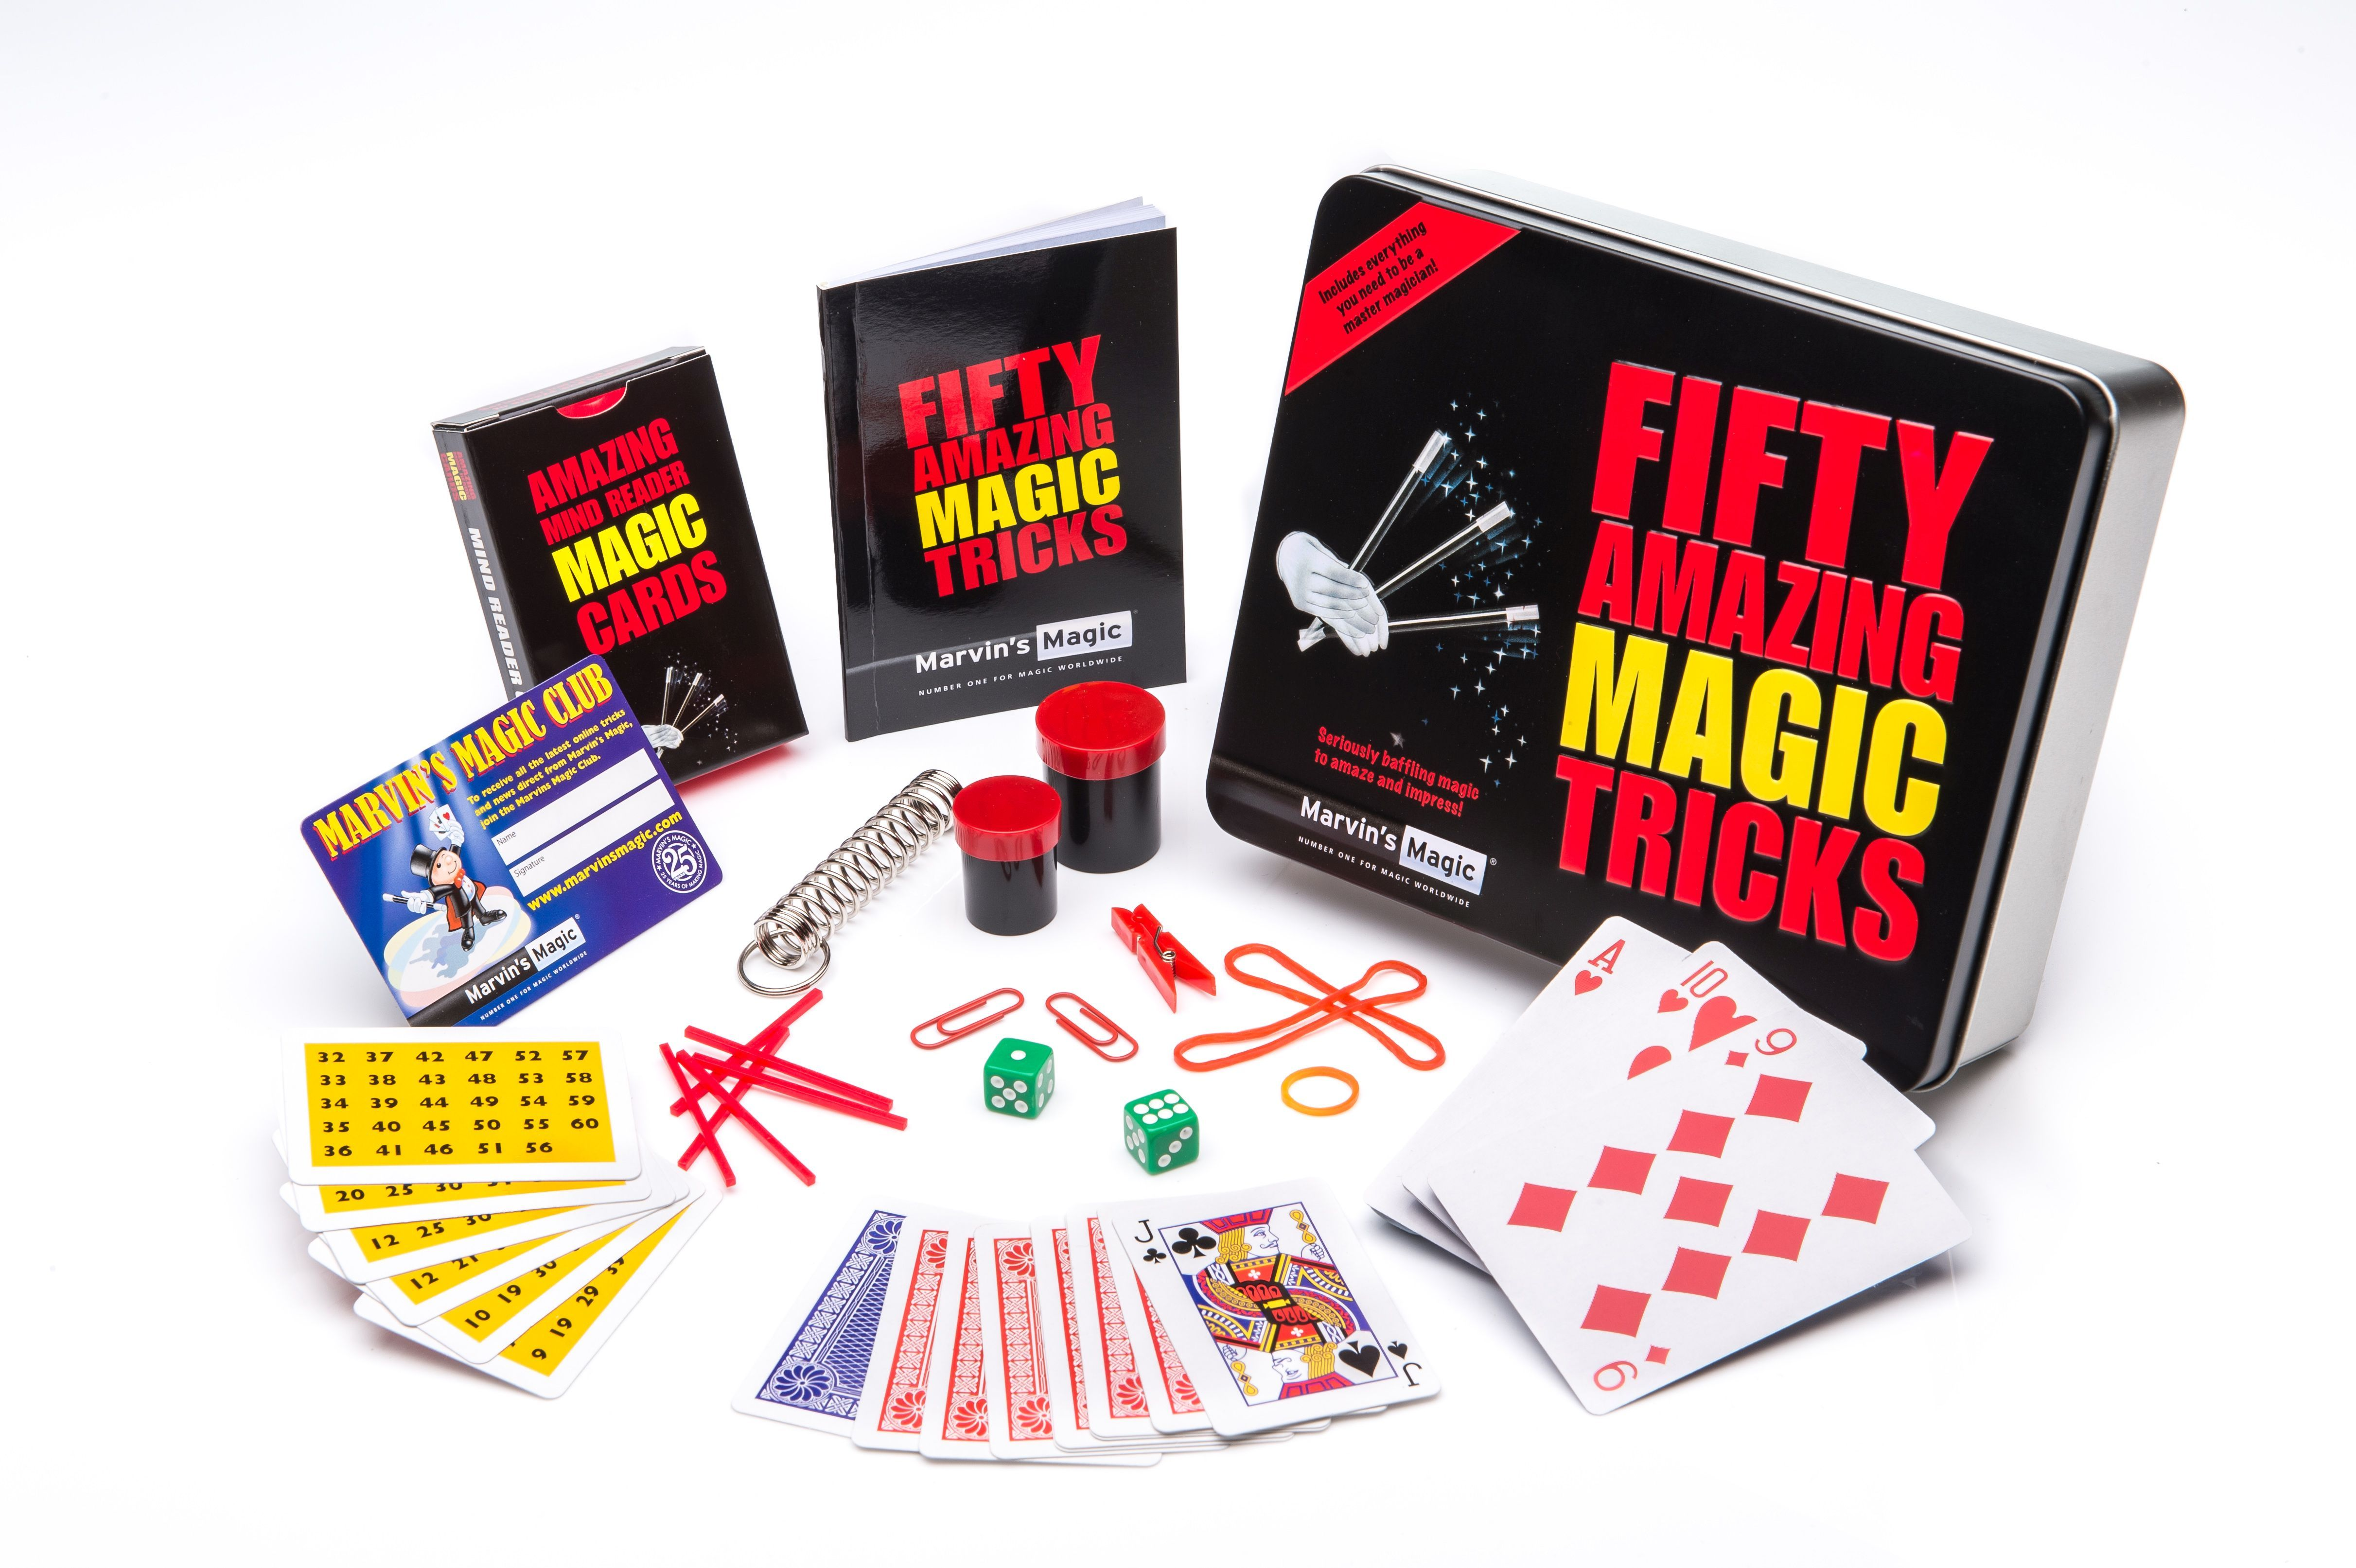 Open display showing contents of Marvins Magic 50 amazing magic tricks tin